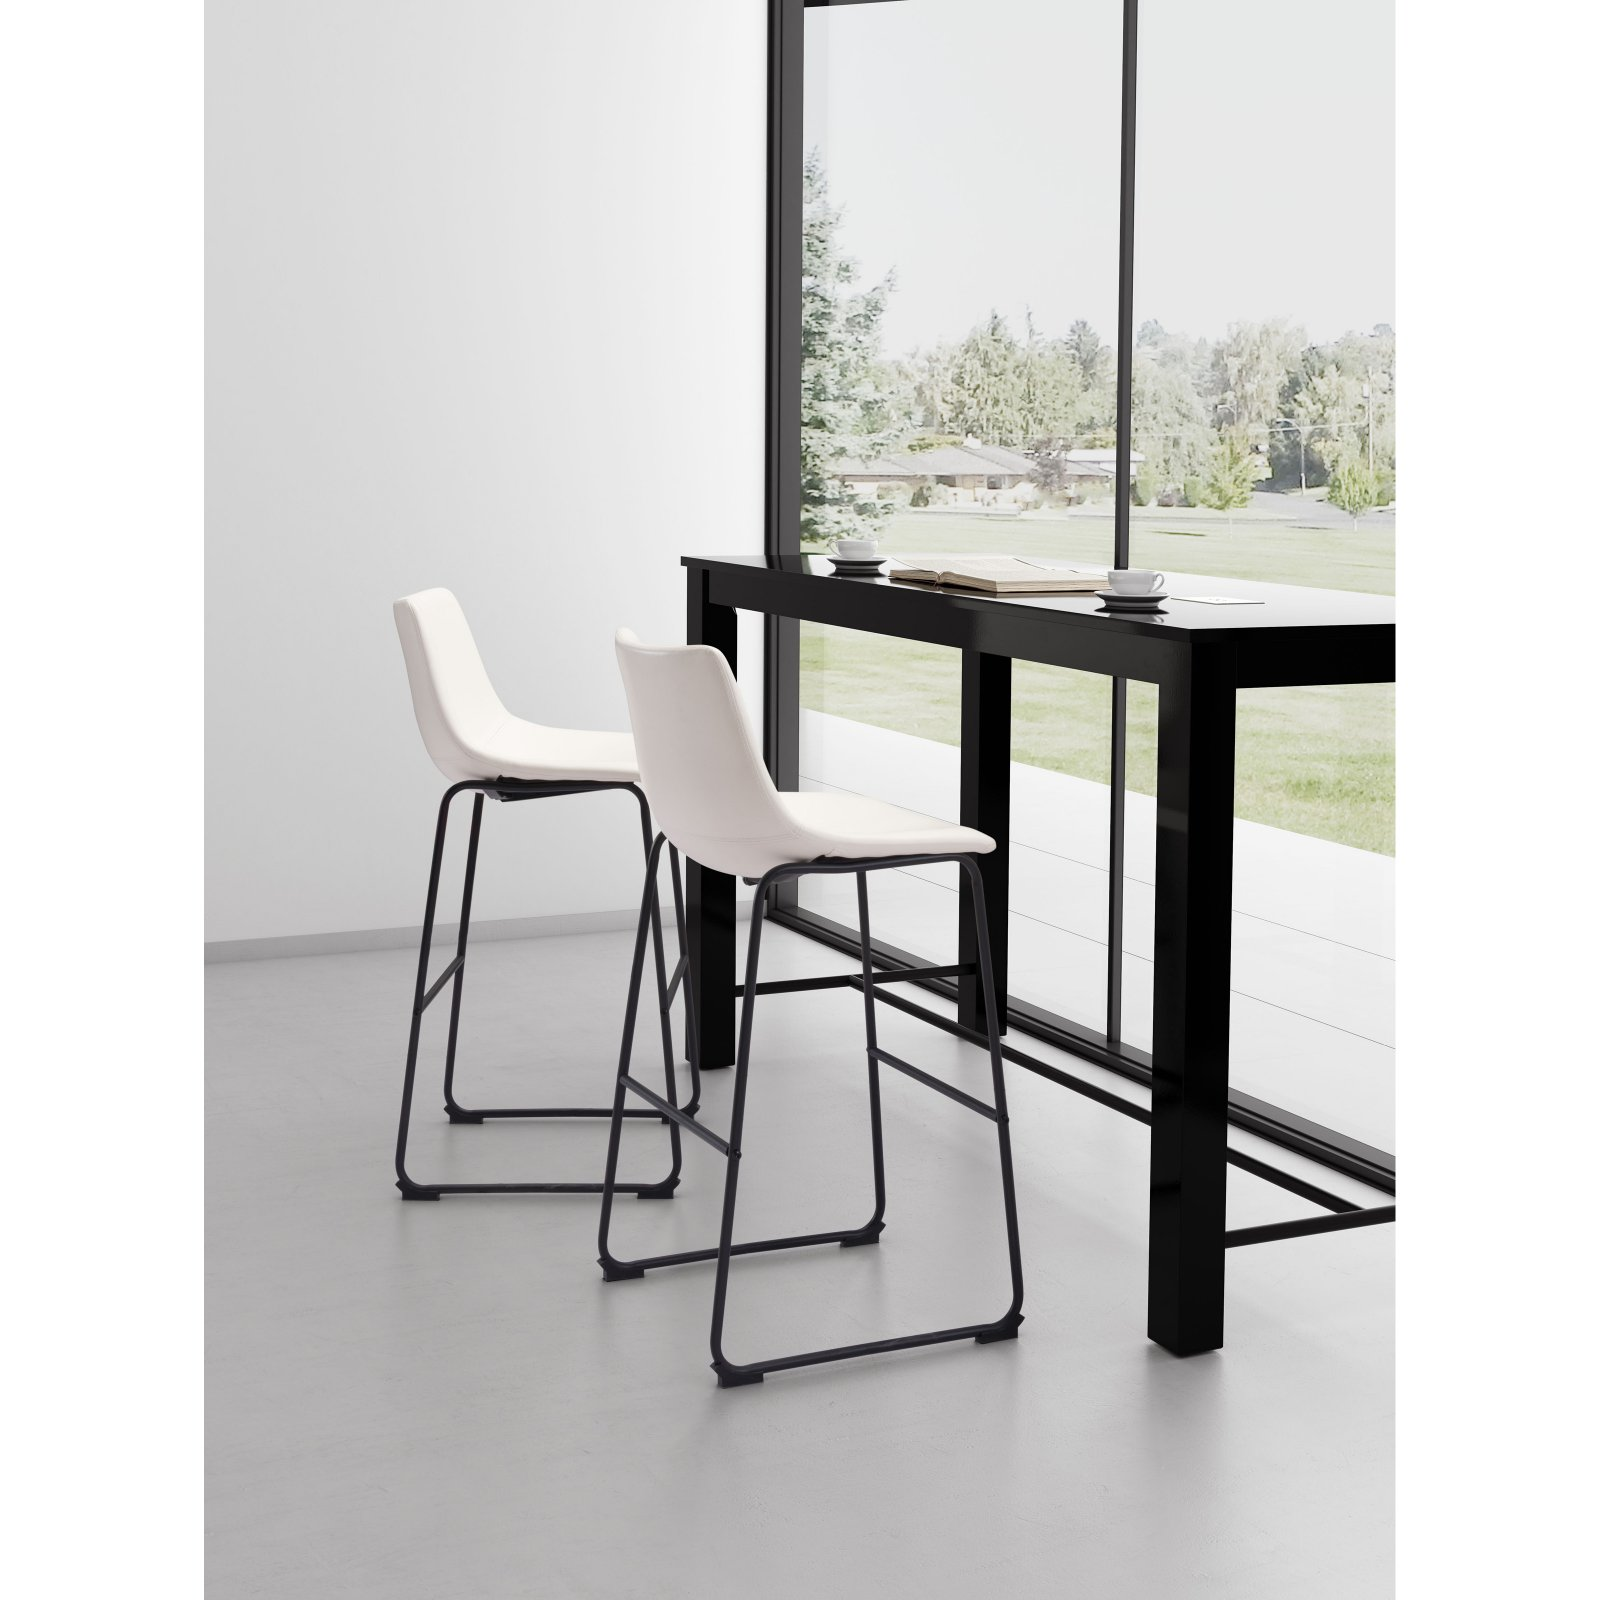 Zuo Modern Contemporary Smart 29 in. Bar Stool